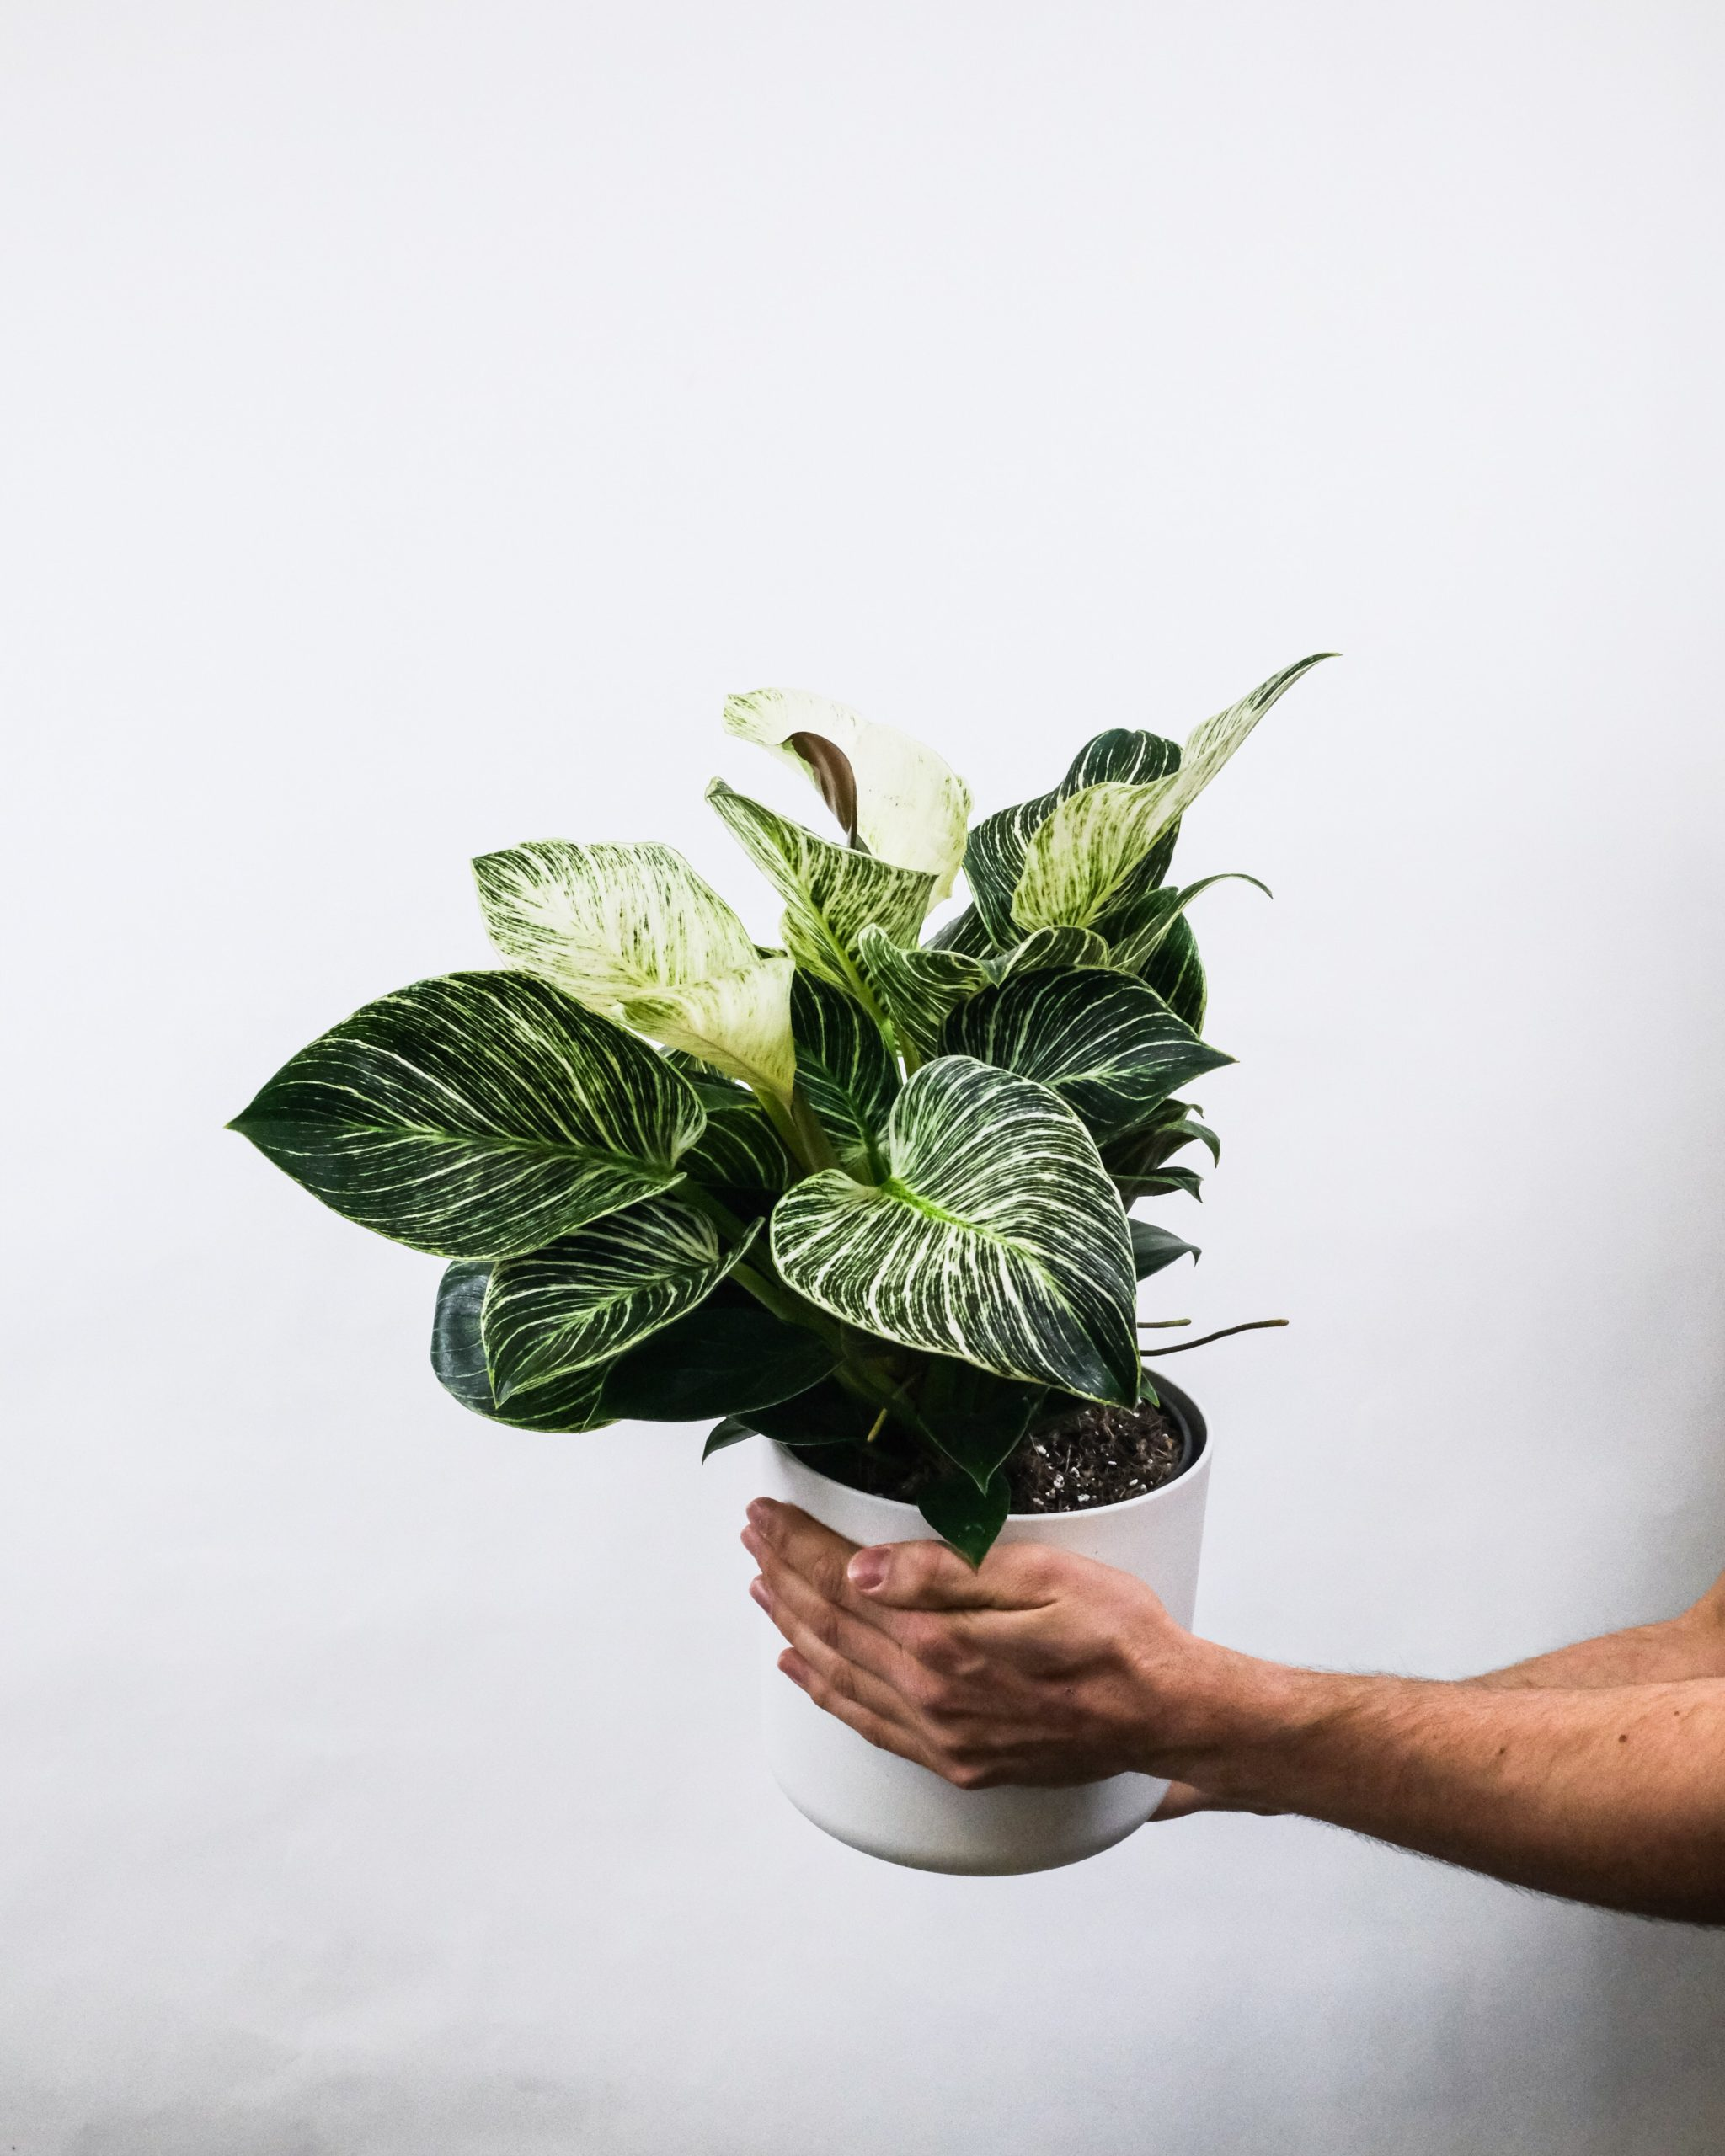 philodendron birkin houseplant in white pot held by hands